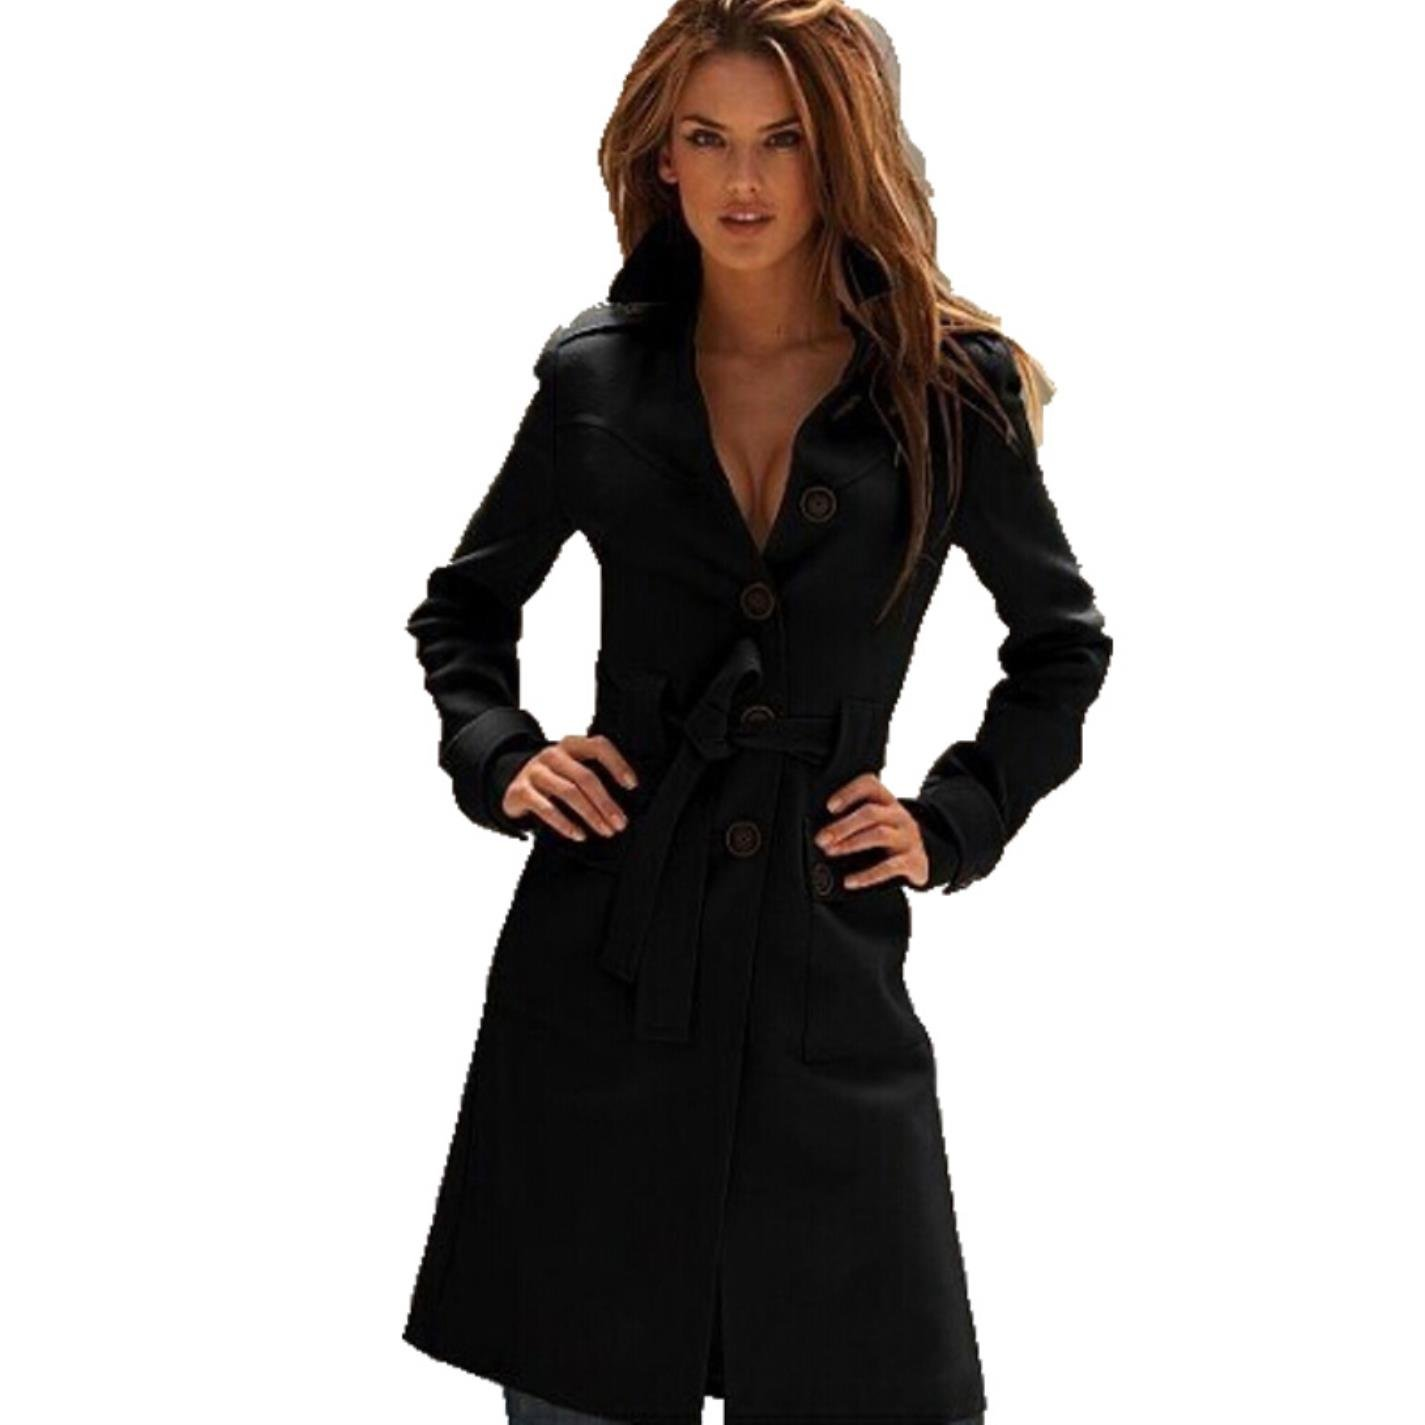 Black ZNaKa Women's Wool Blend Overcoat Single Breasted Long Trench Coat